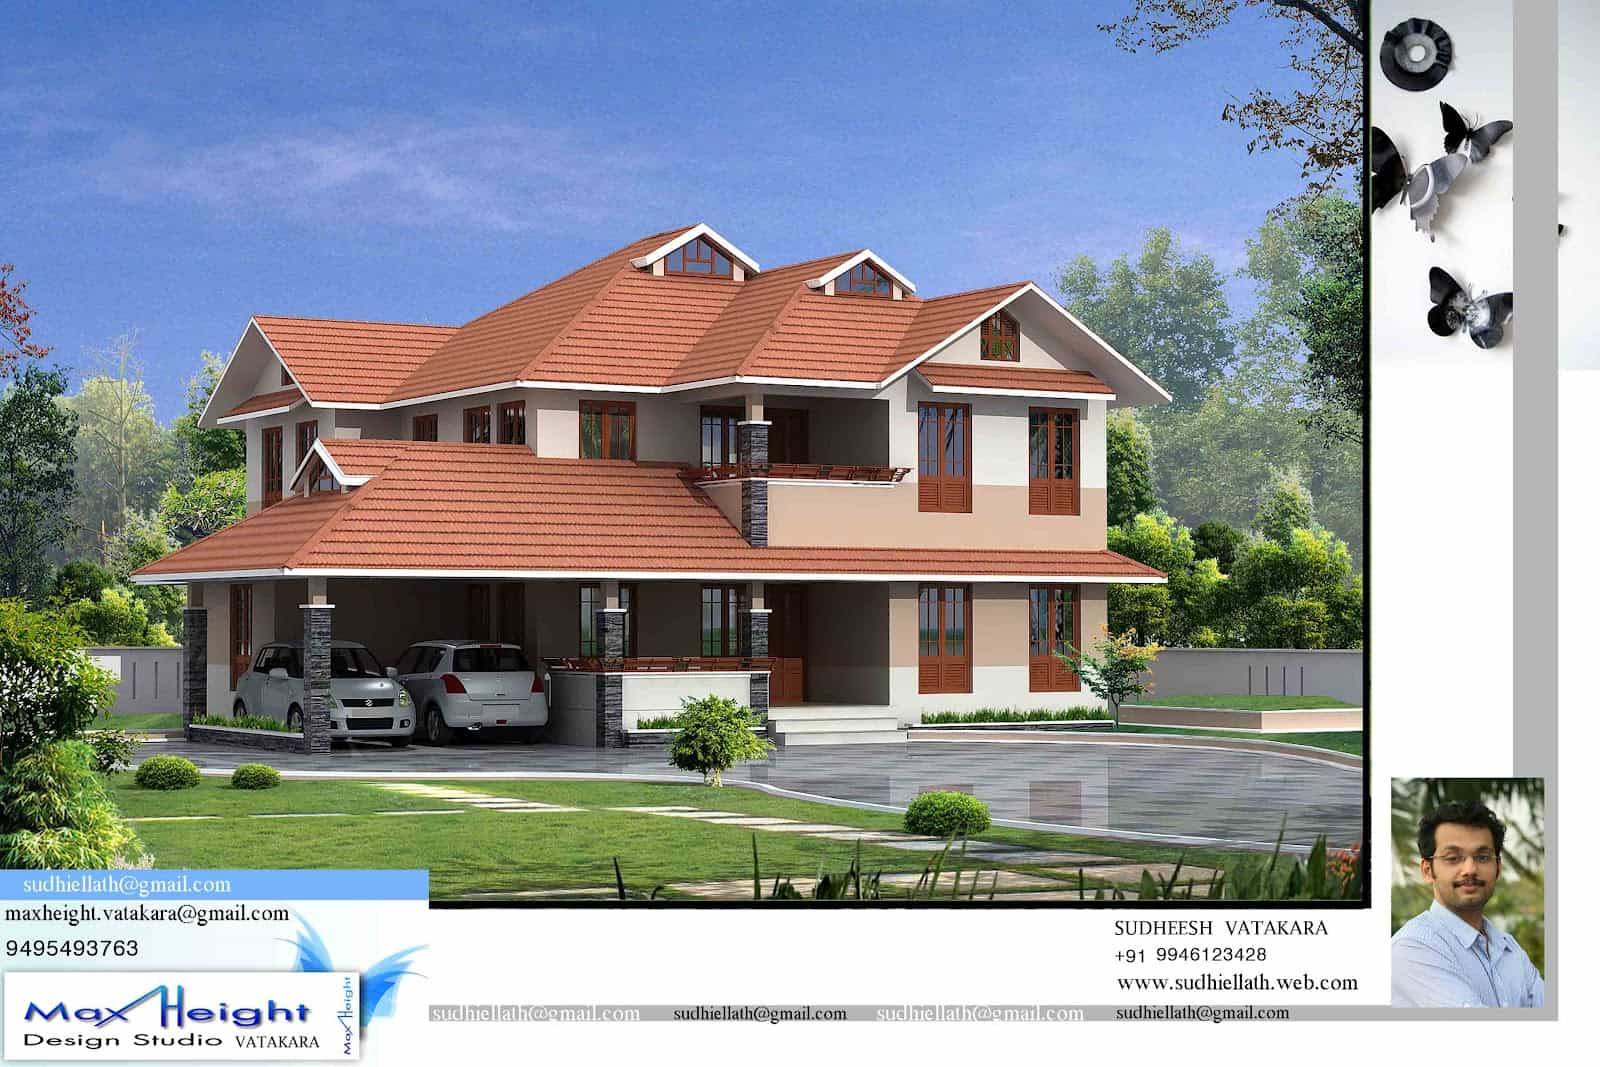 Kerala house model seaside kerala home design for Model house design